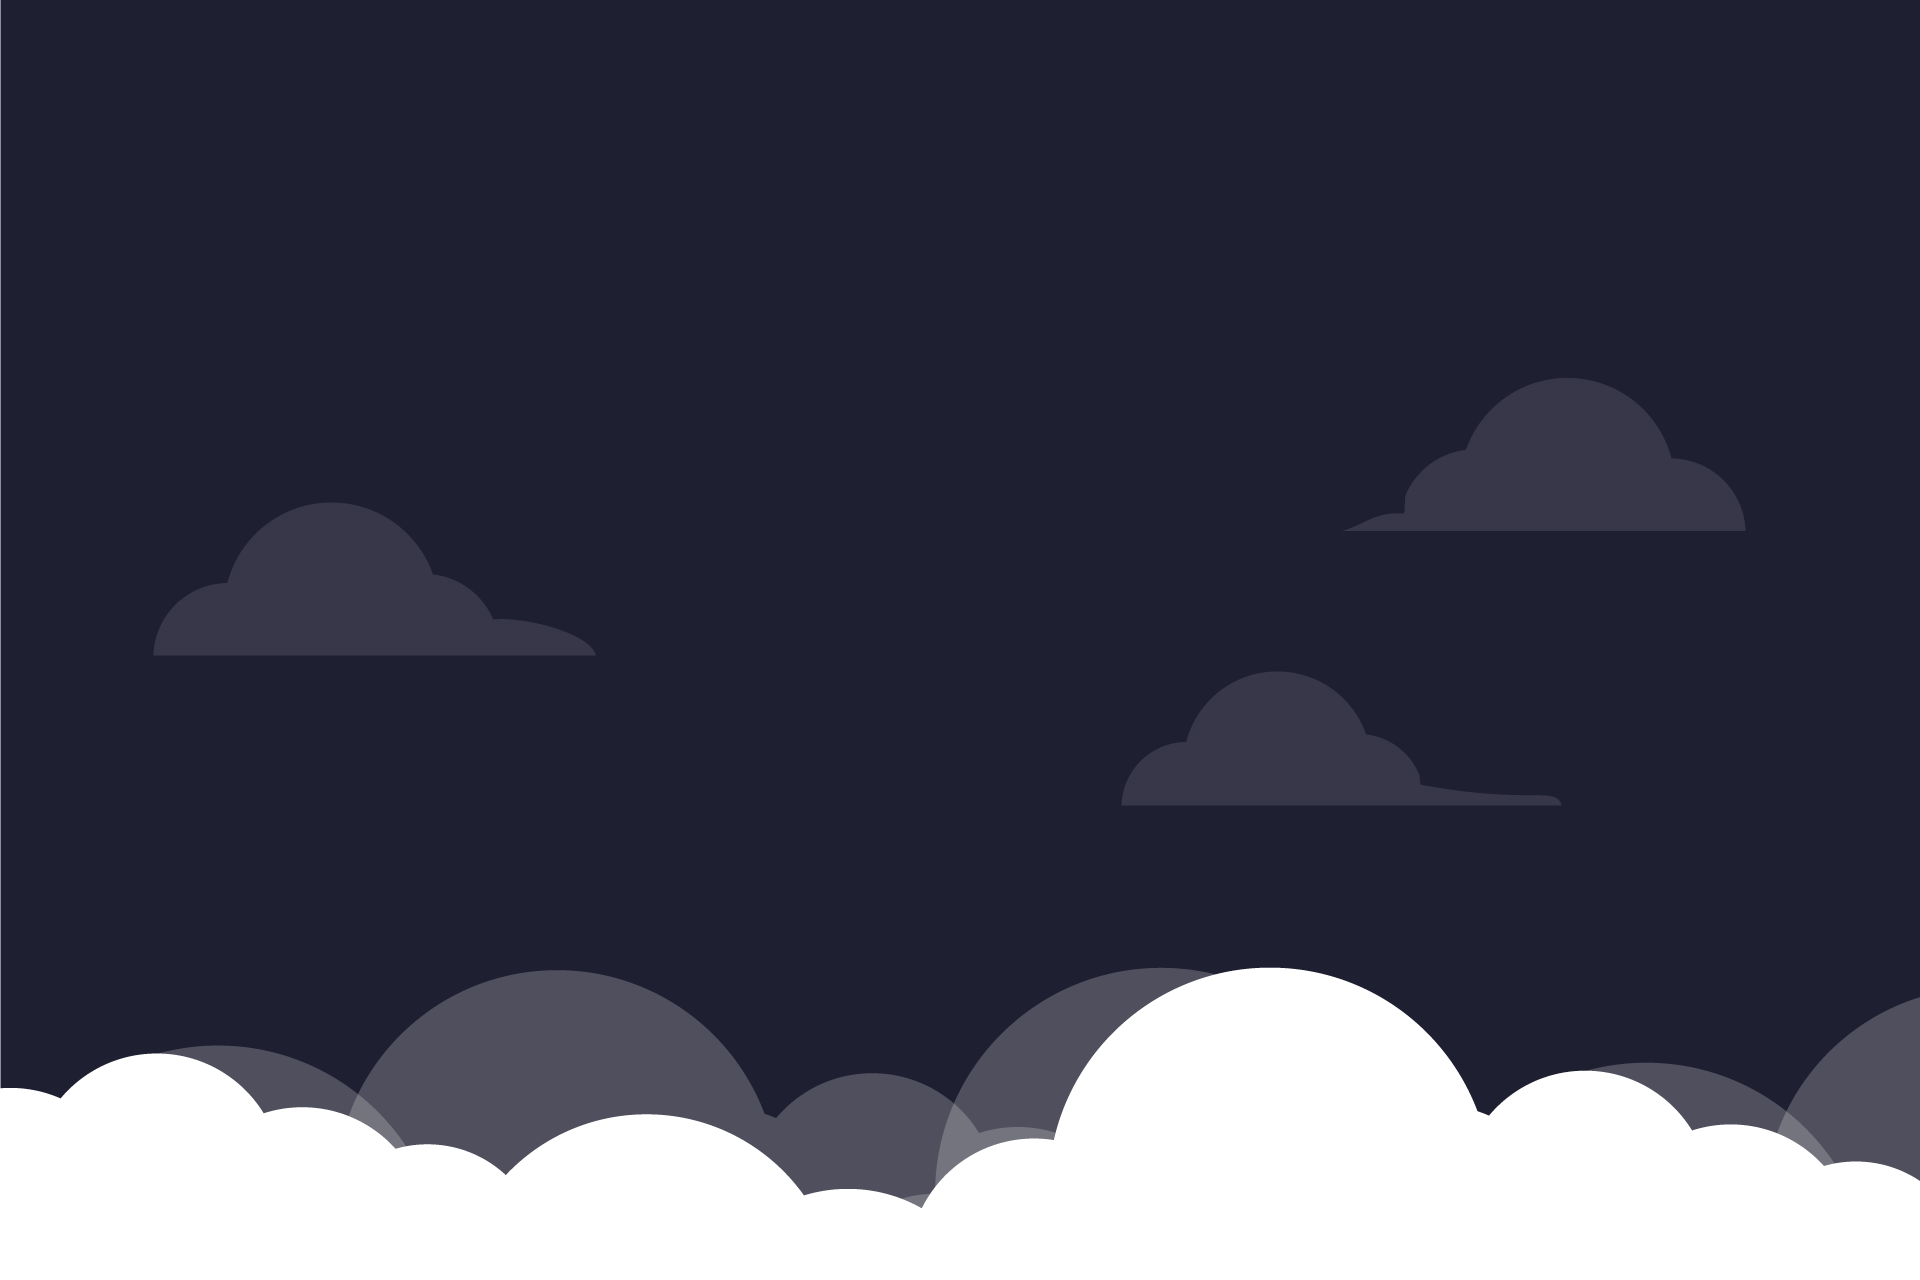 opt7-cloud-background